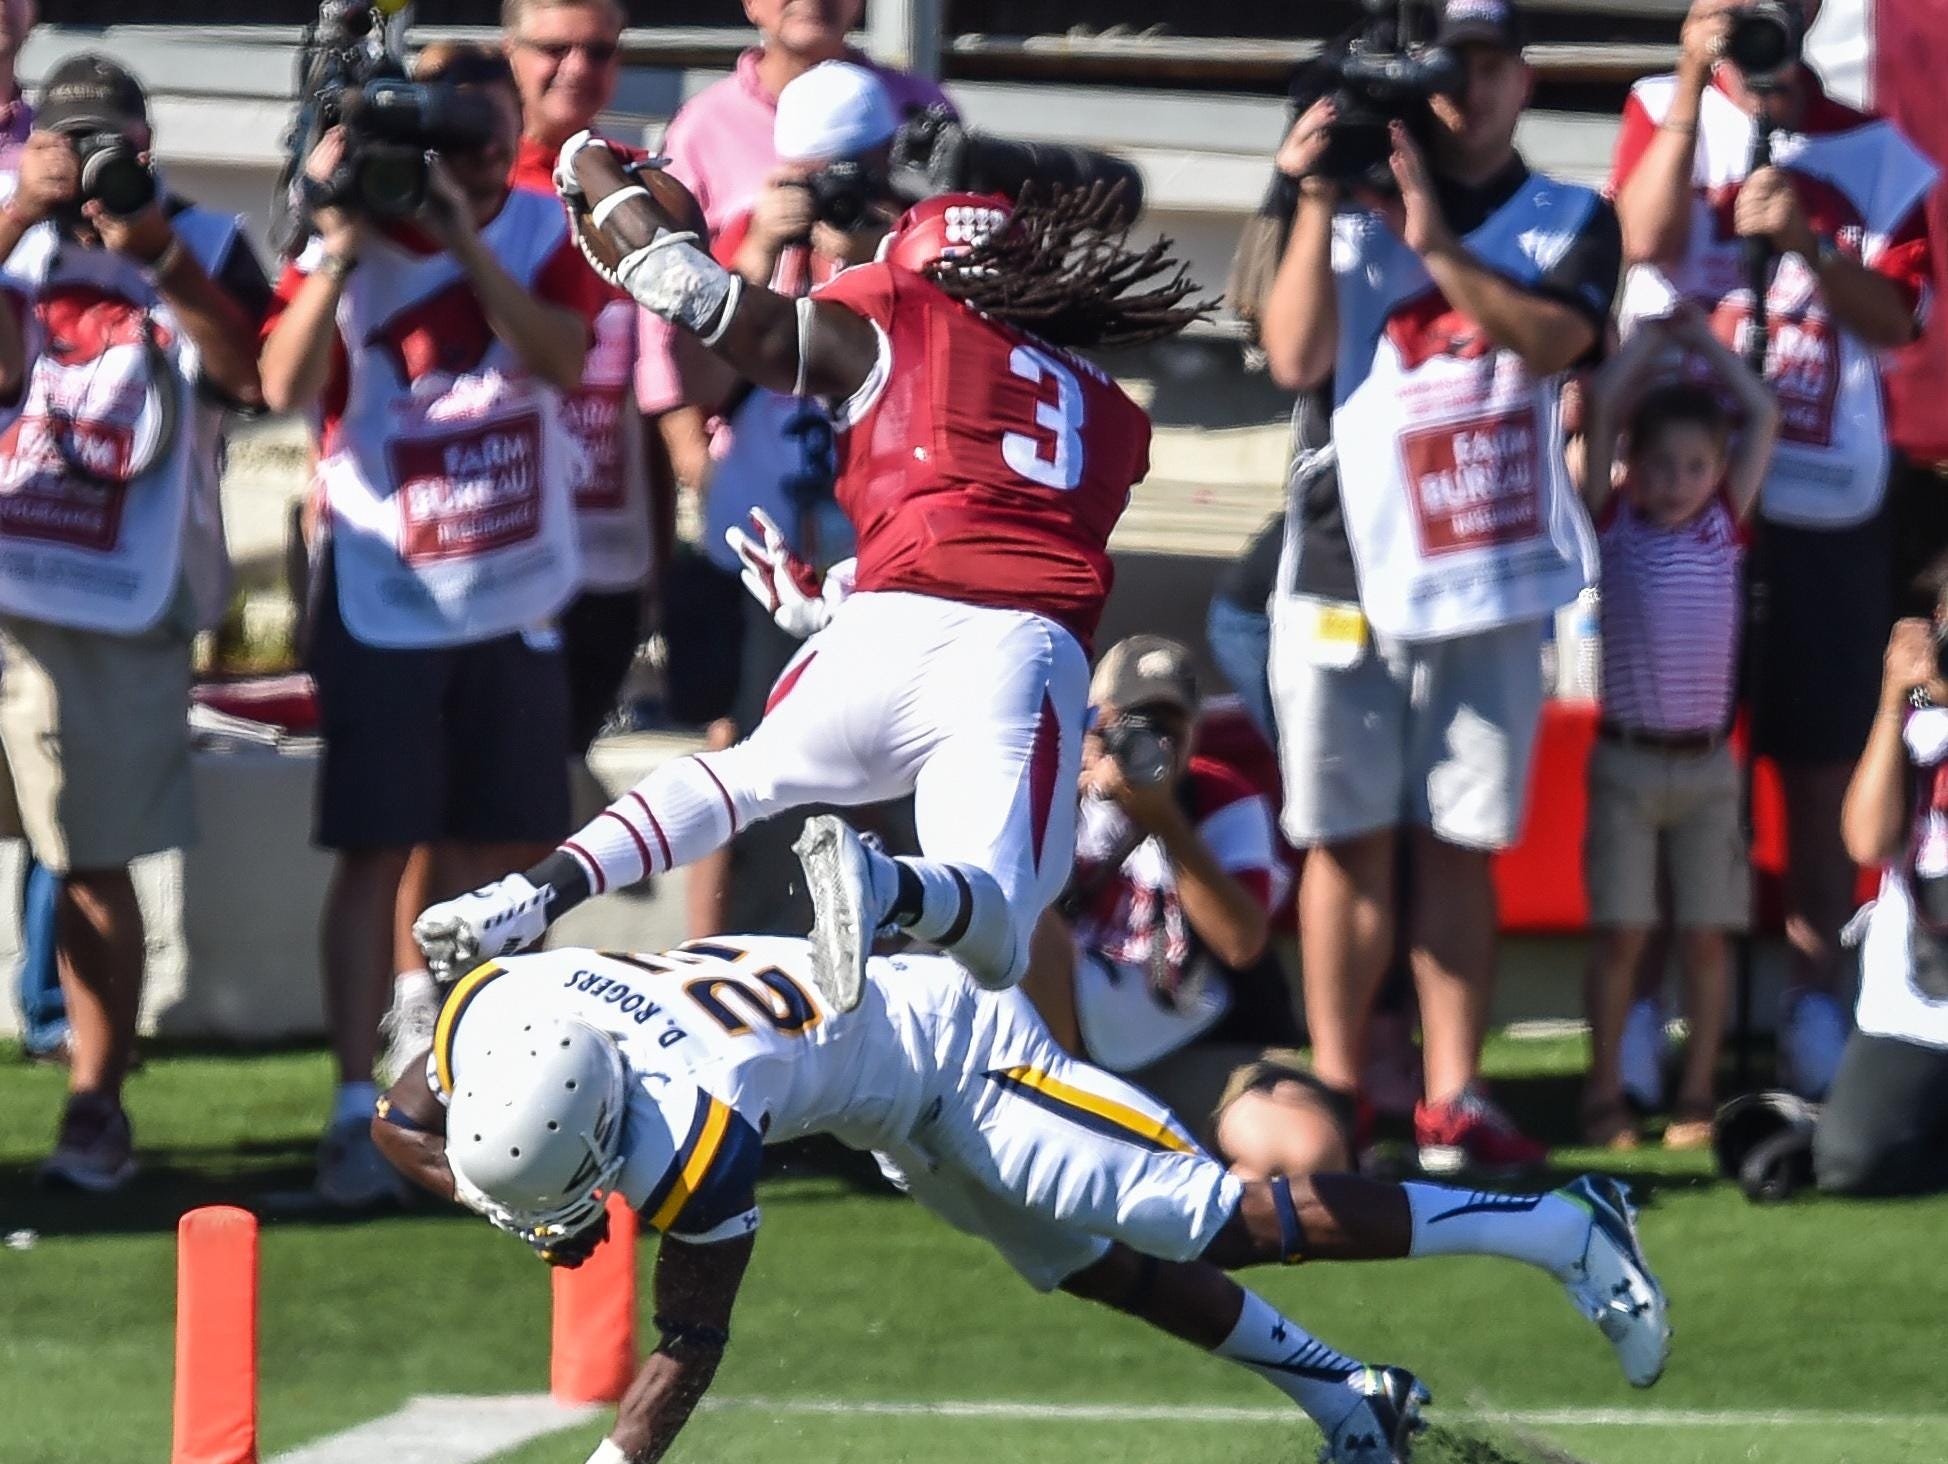 Toledo strong safety Delando Johnson attempts to keep Arkansas' Alex Collins out of the end zone during last week's game in Little Rock. Toledo pulled off a shocking 16-12 upset.